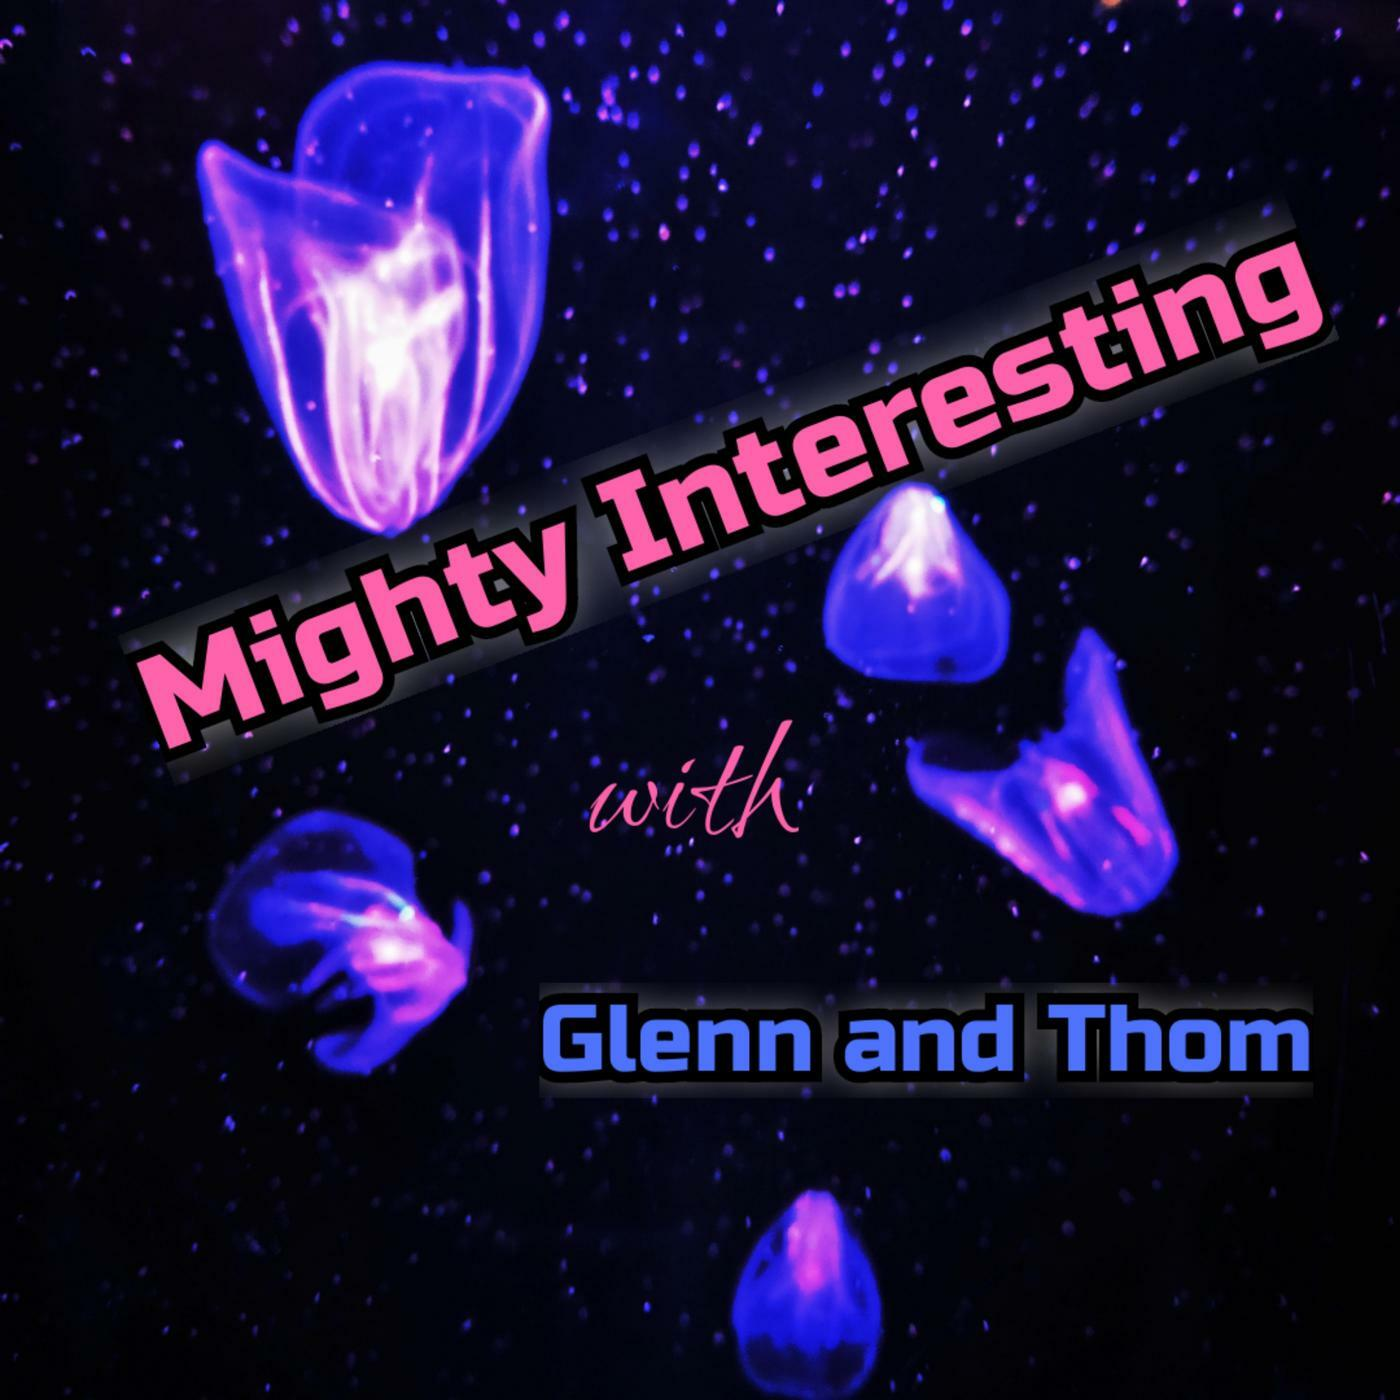 Mighty Interesting with Glenn and Thom